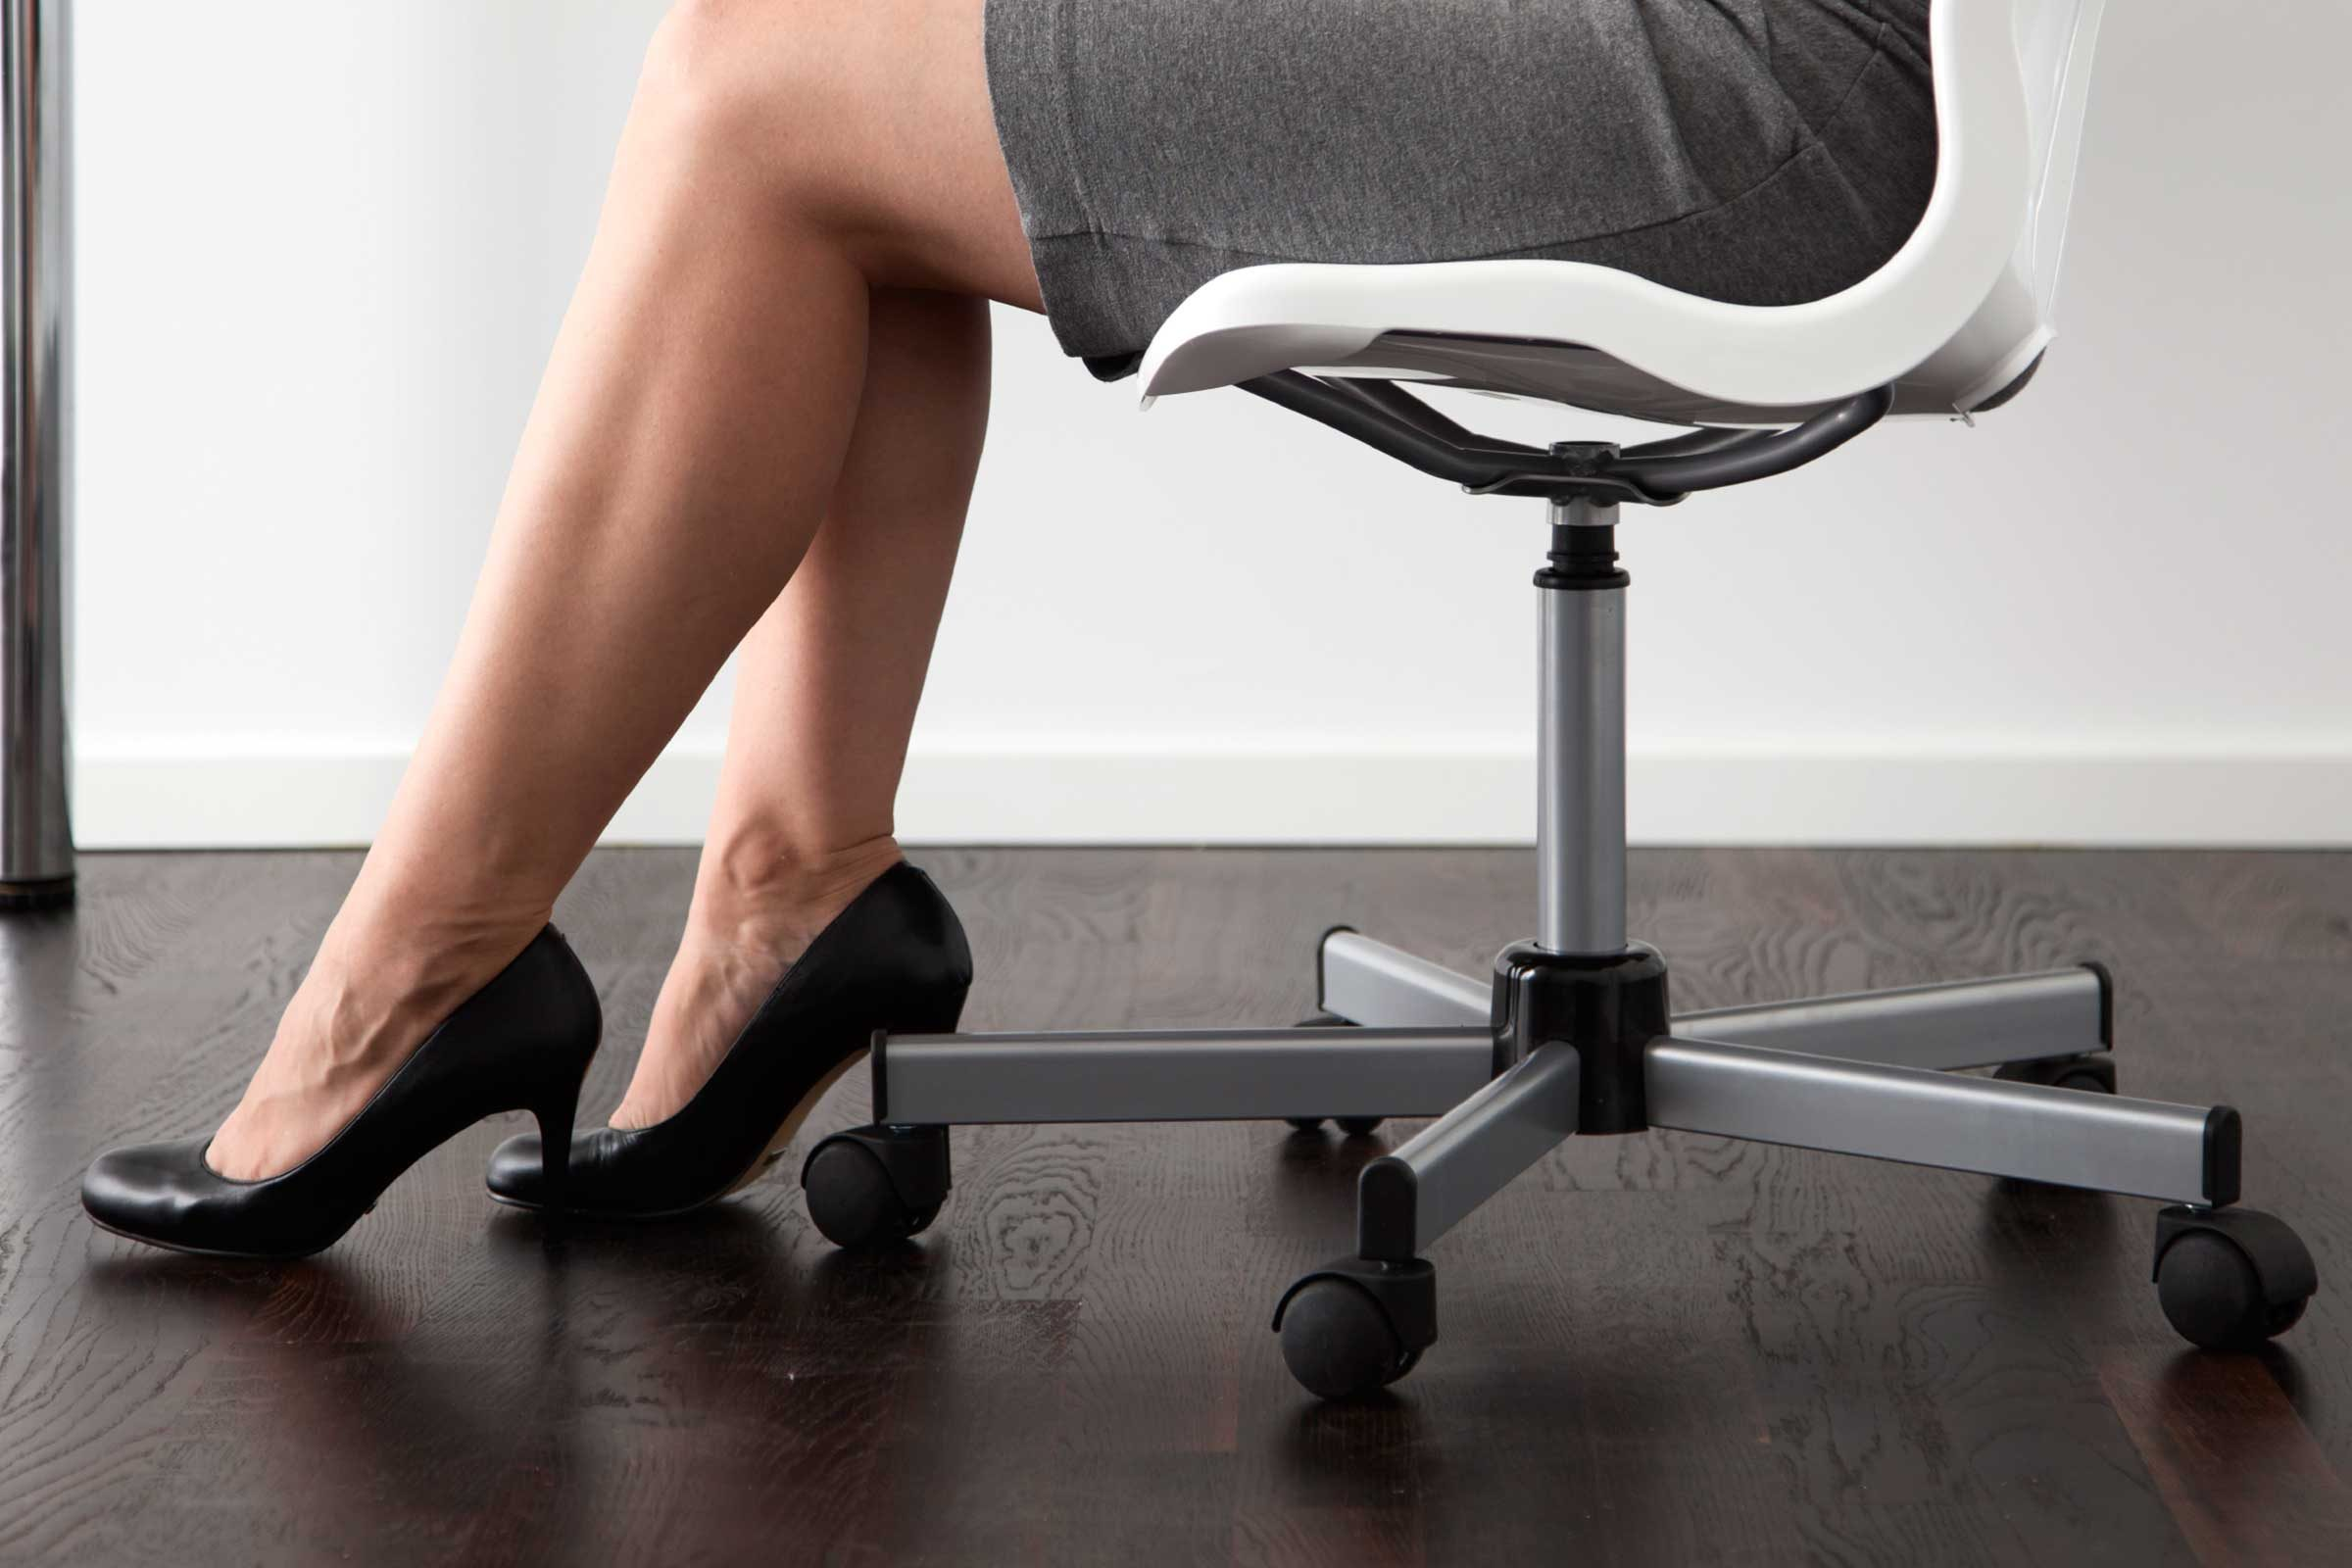 How to Tone Legs While Sitting How to Tone Legs While Sitting new pics